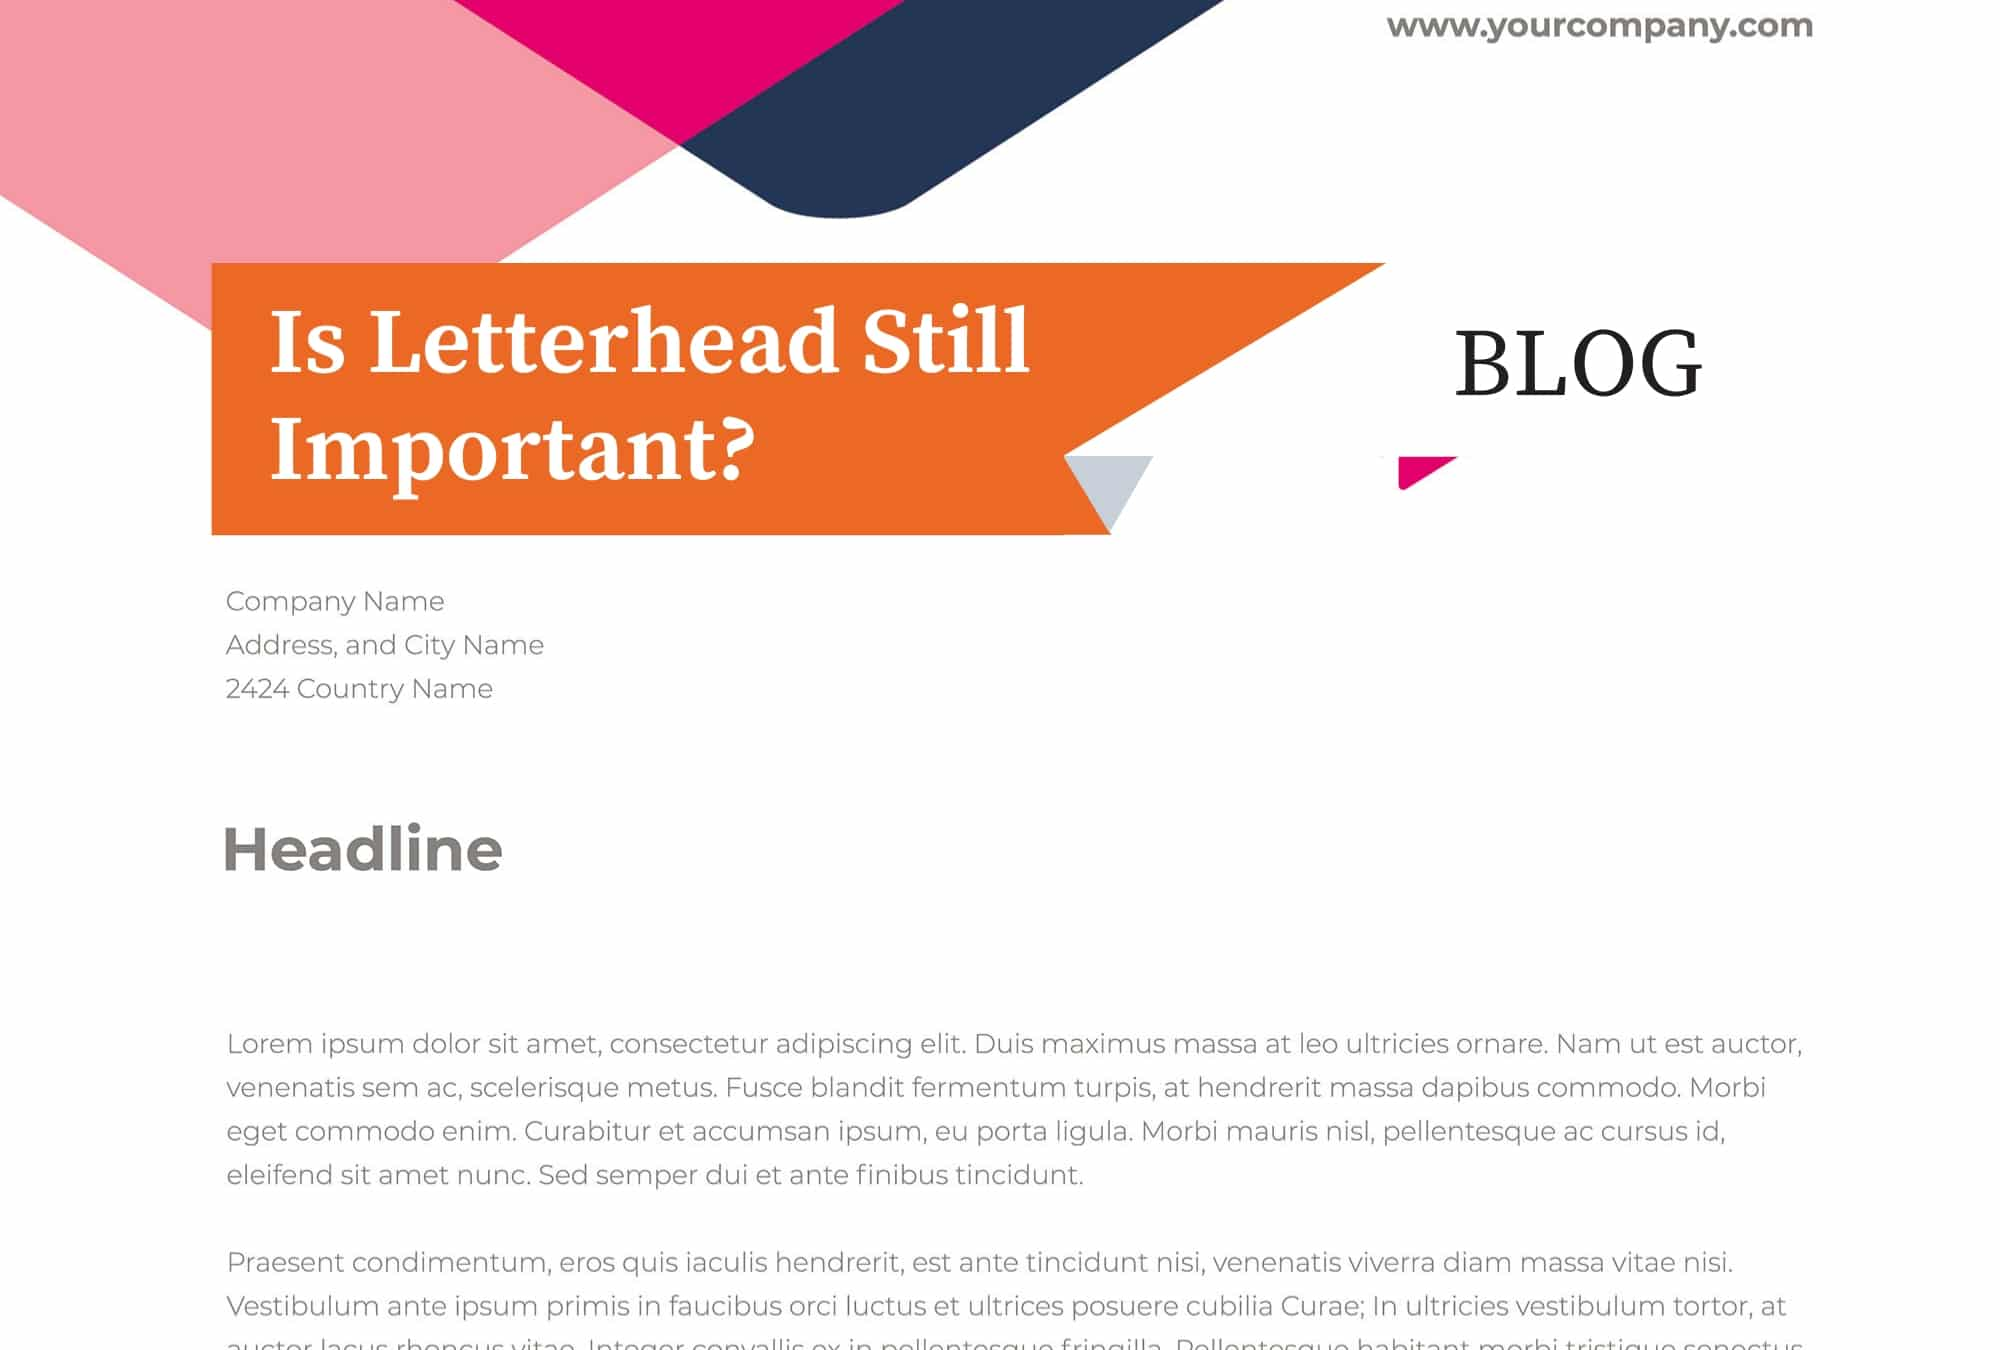 Is Letterhead Still Important?